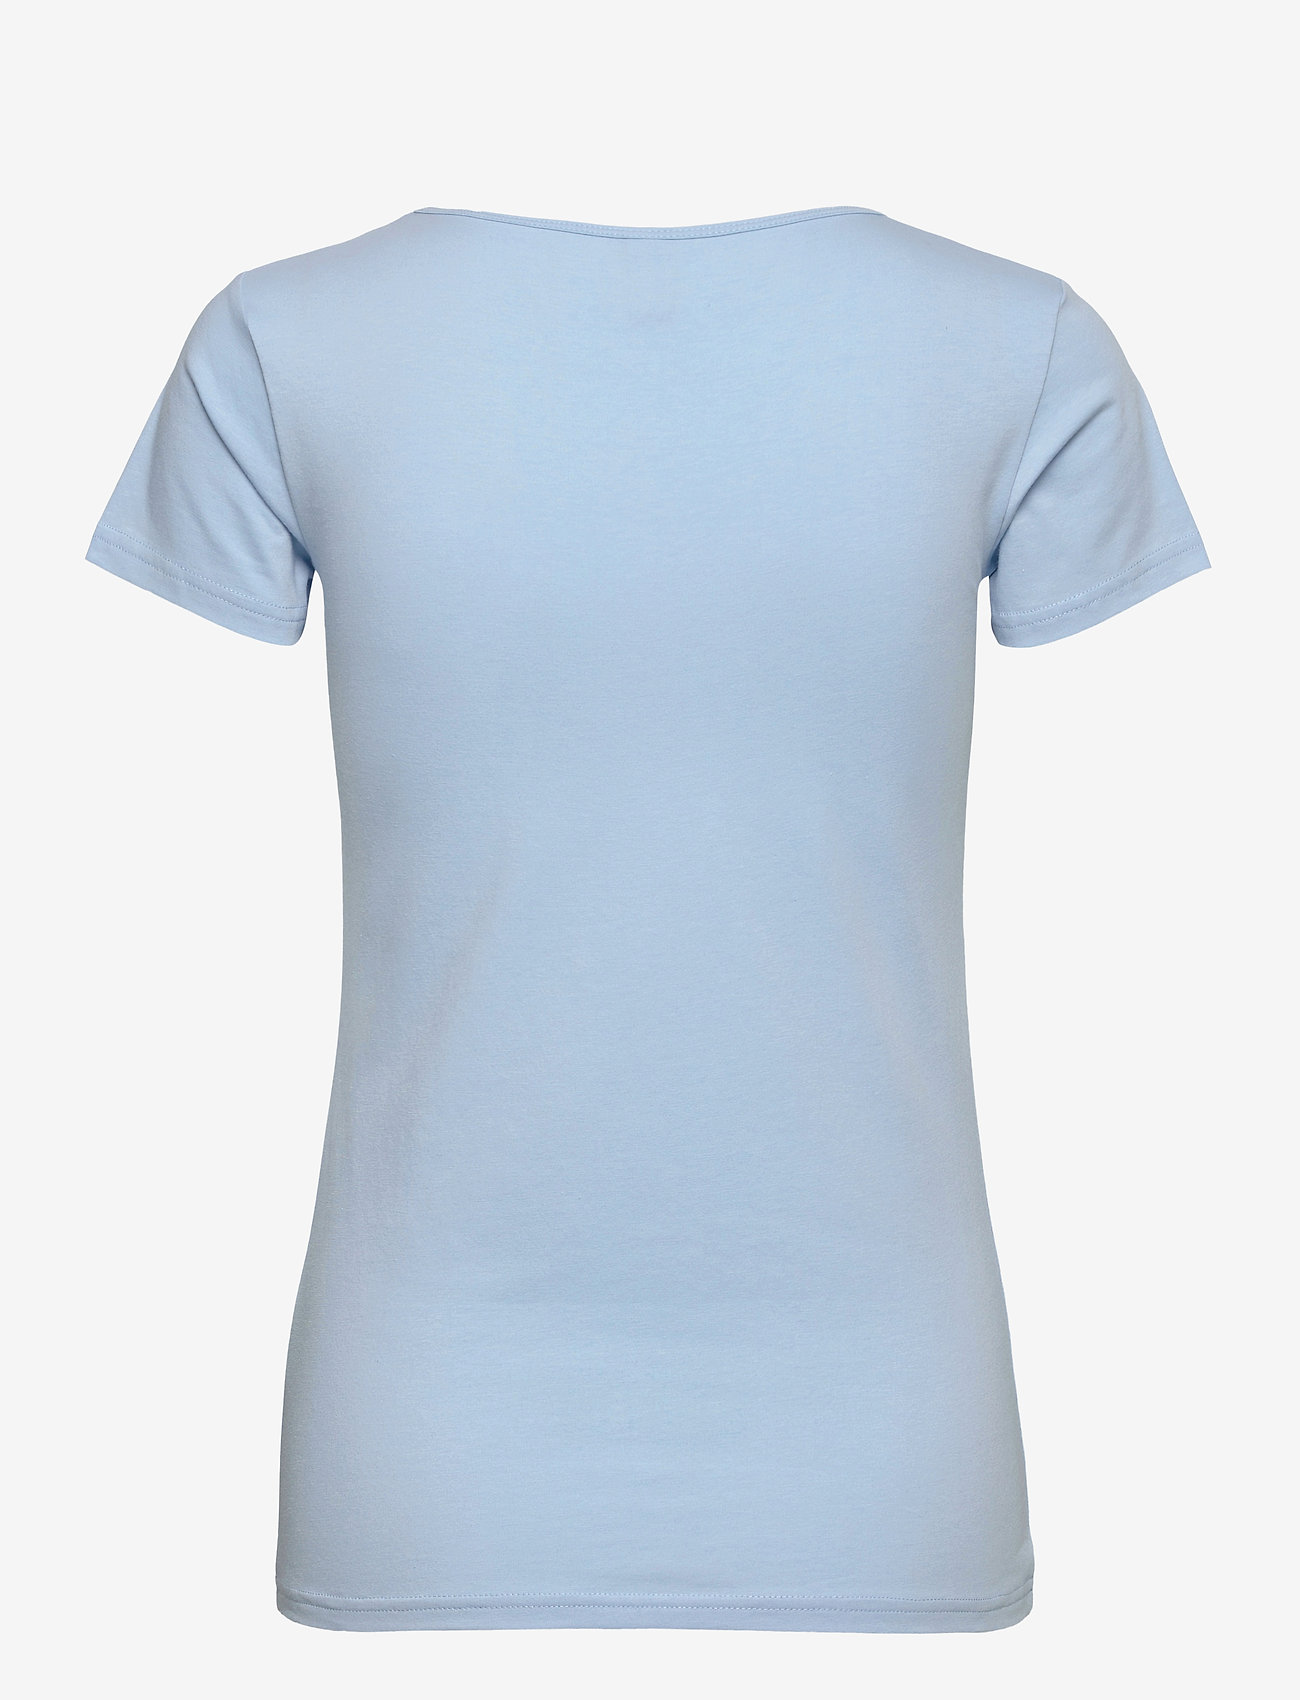 Soyaconcept - SC-PYLLE - t-shirt & tops - powder blue - 1